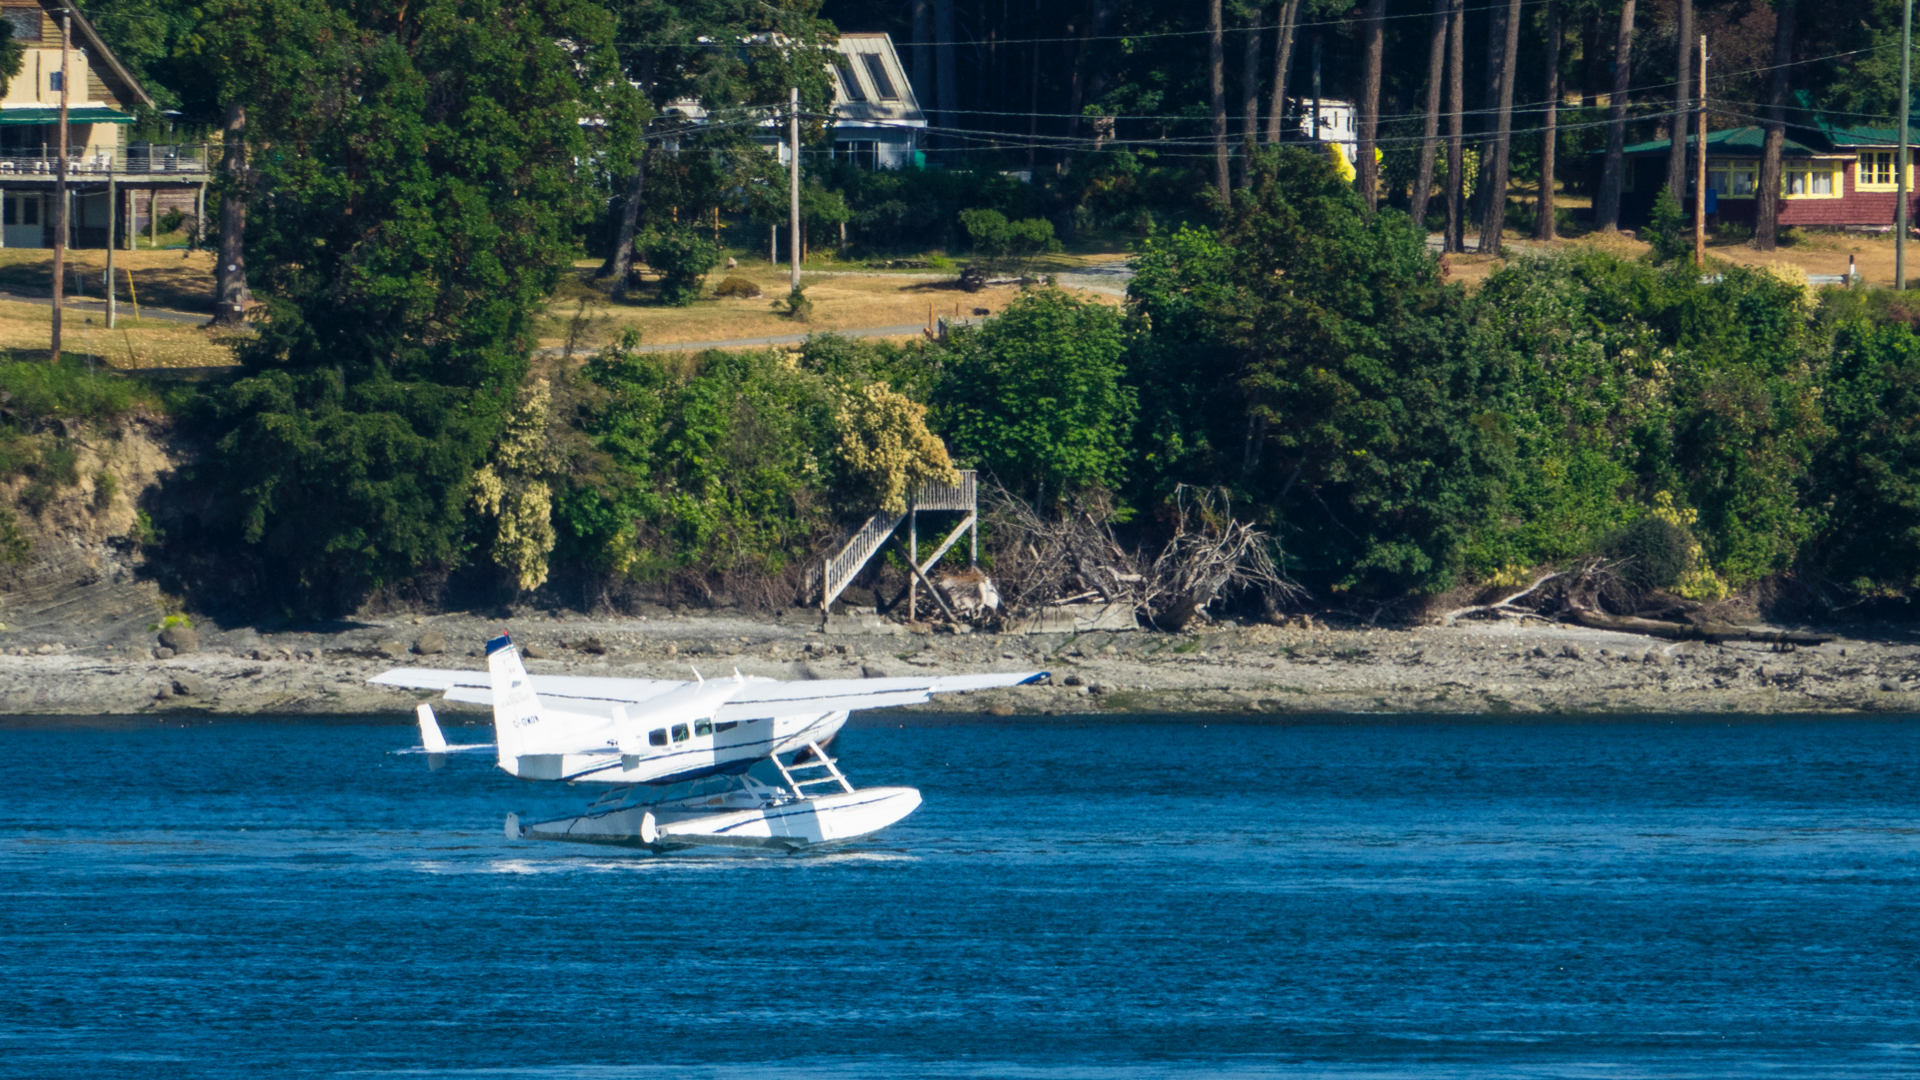 A float plane came in to land at Mayne Island while we were there.